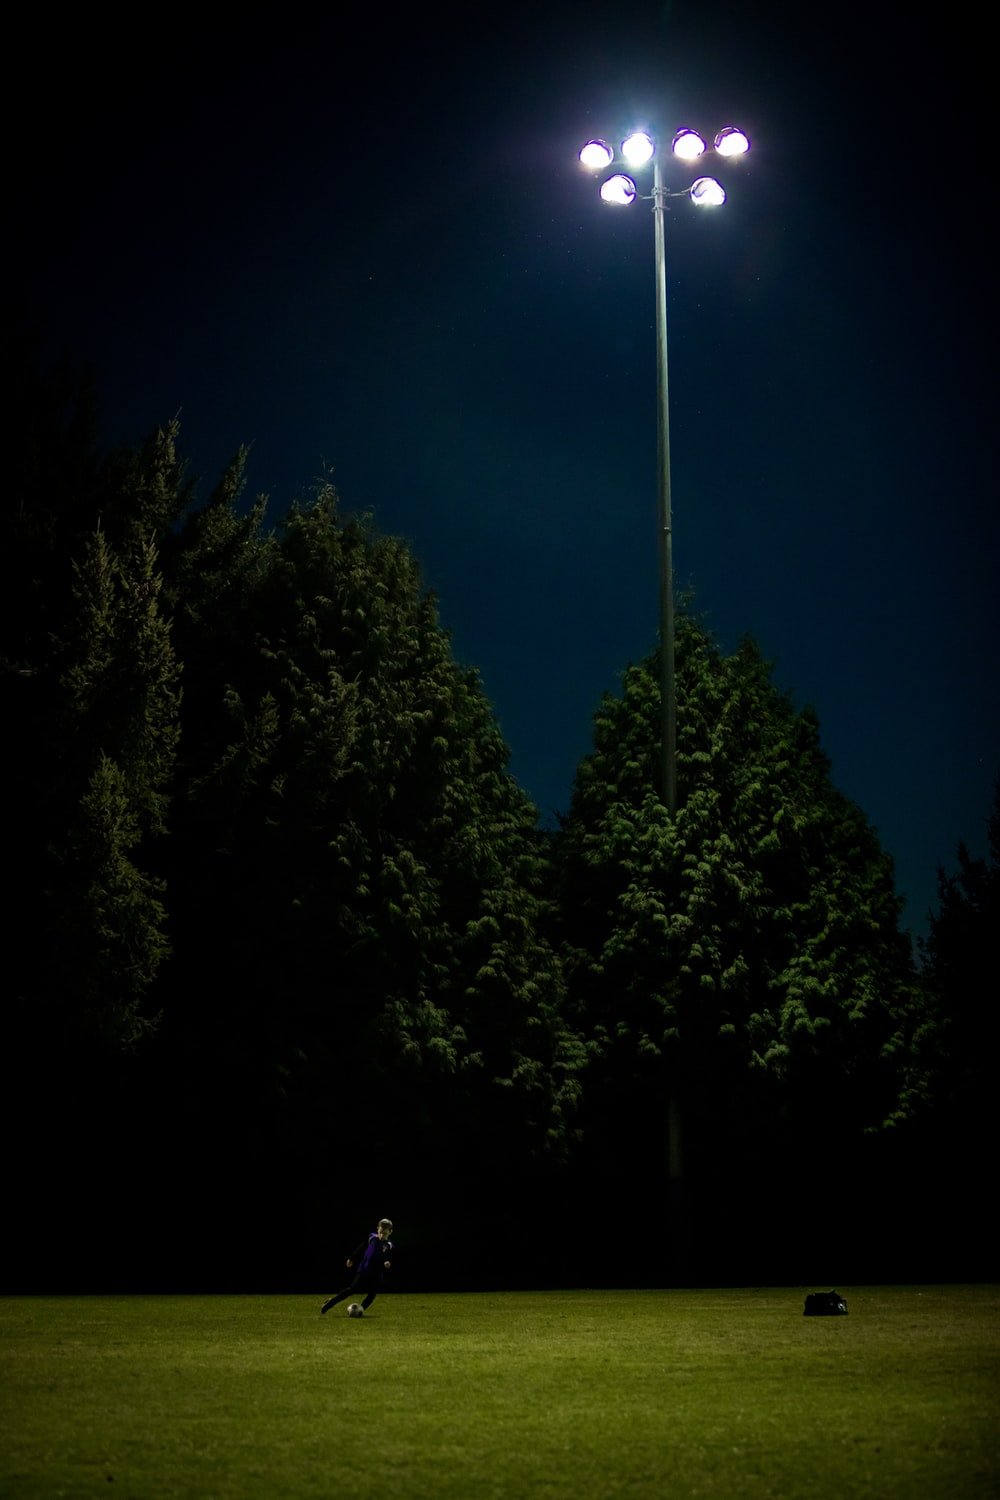 man playing football during nighttime